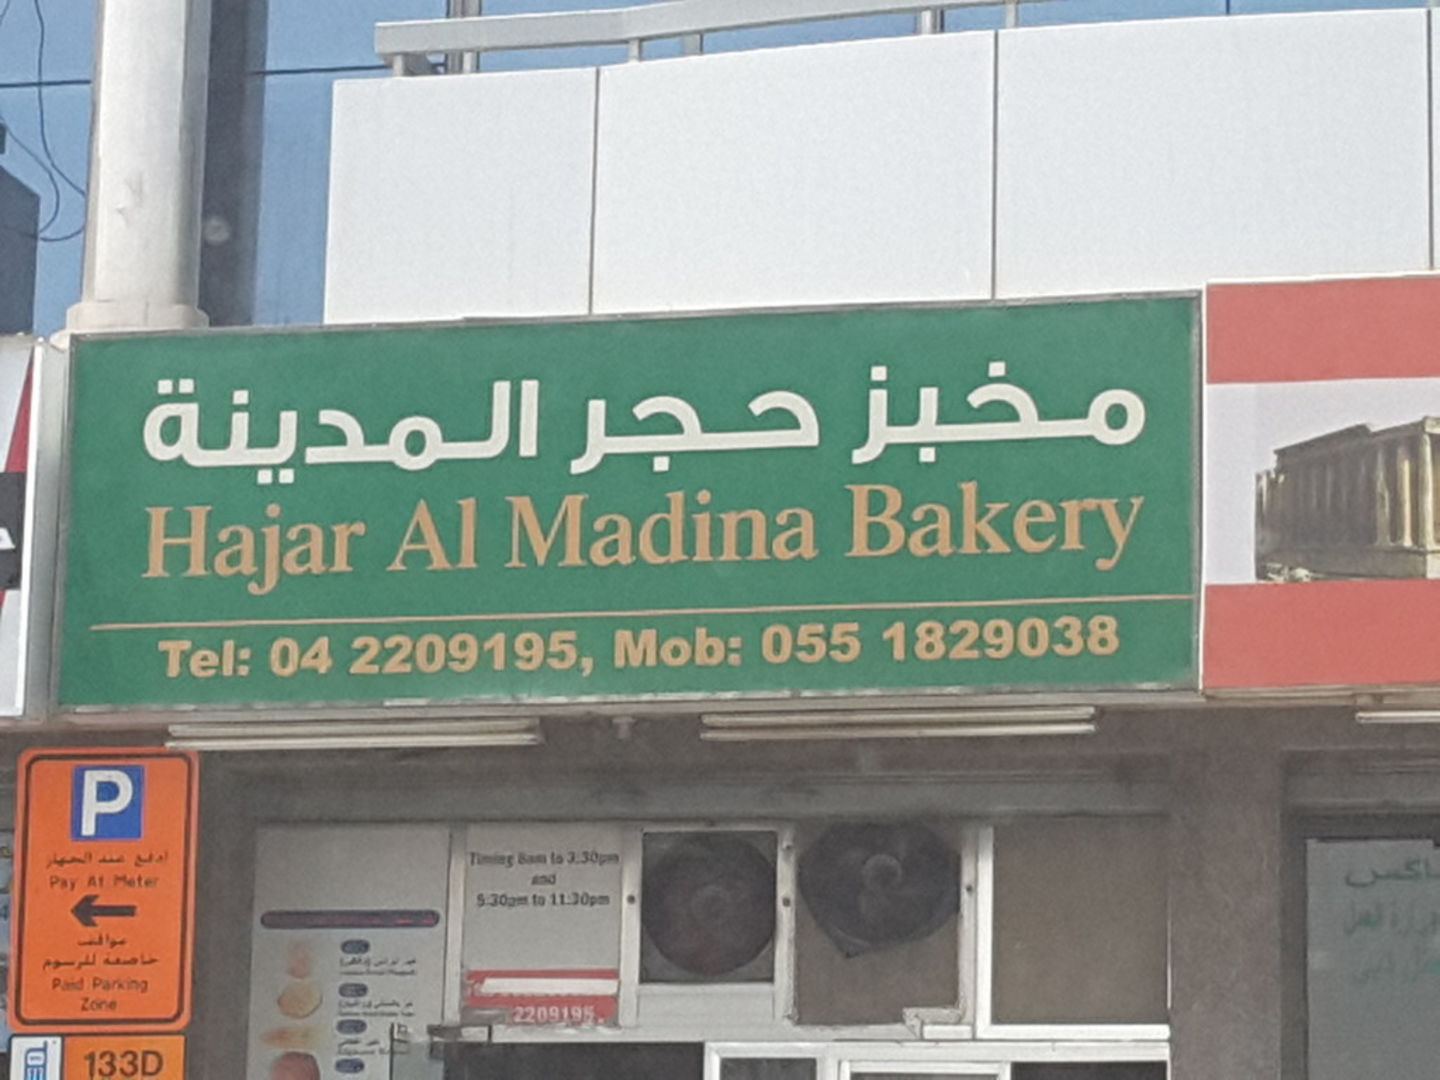 Walif-business-hajar-al-madina-bakery